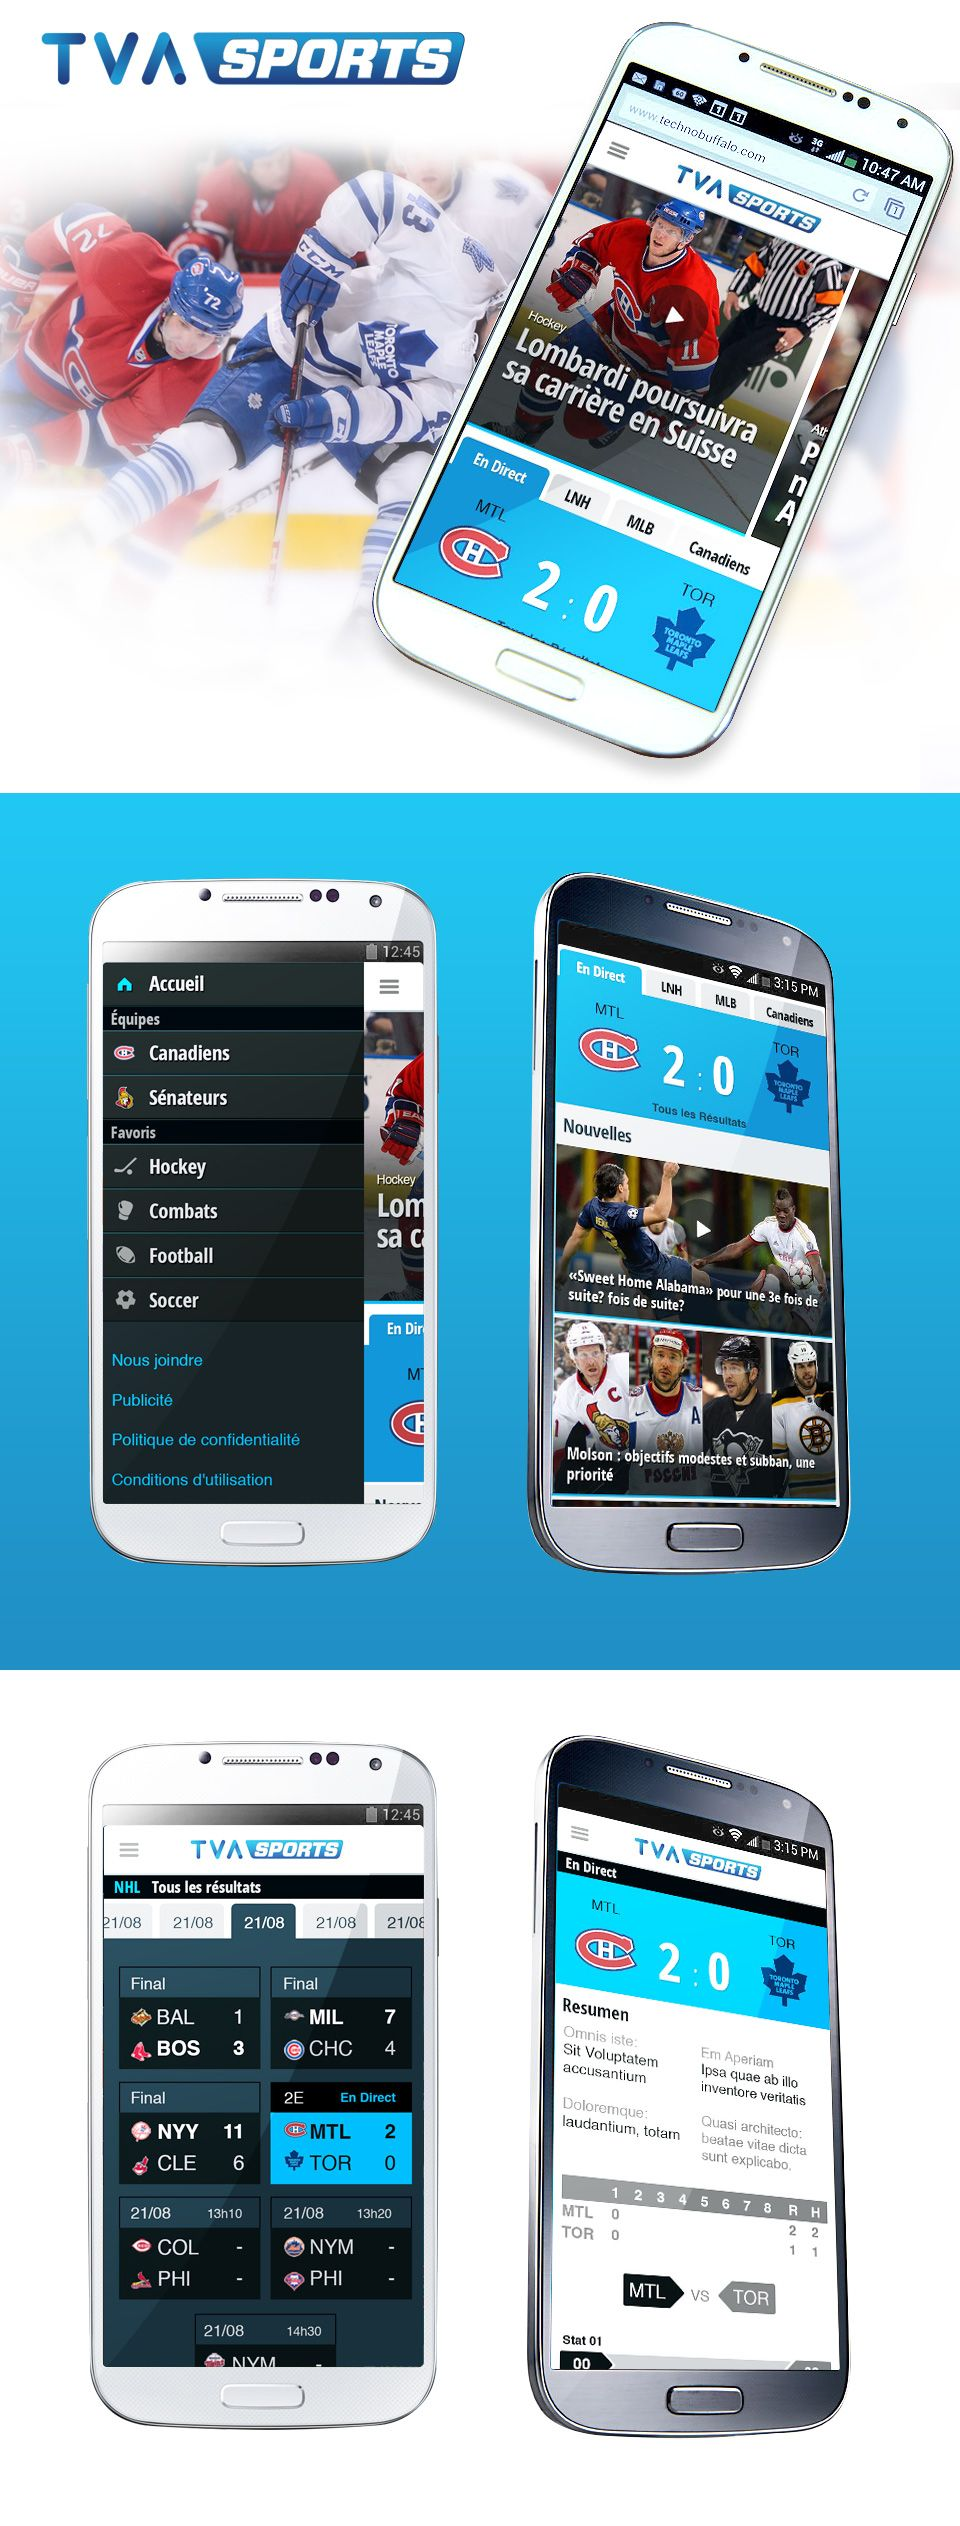 TVA Sports Site Mobile Sports sites, Sports, Mobile